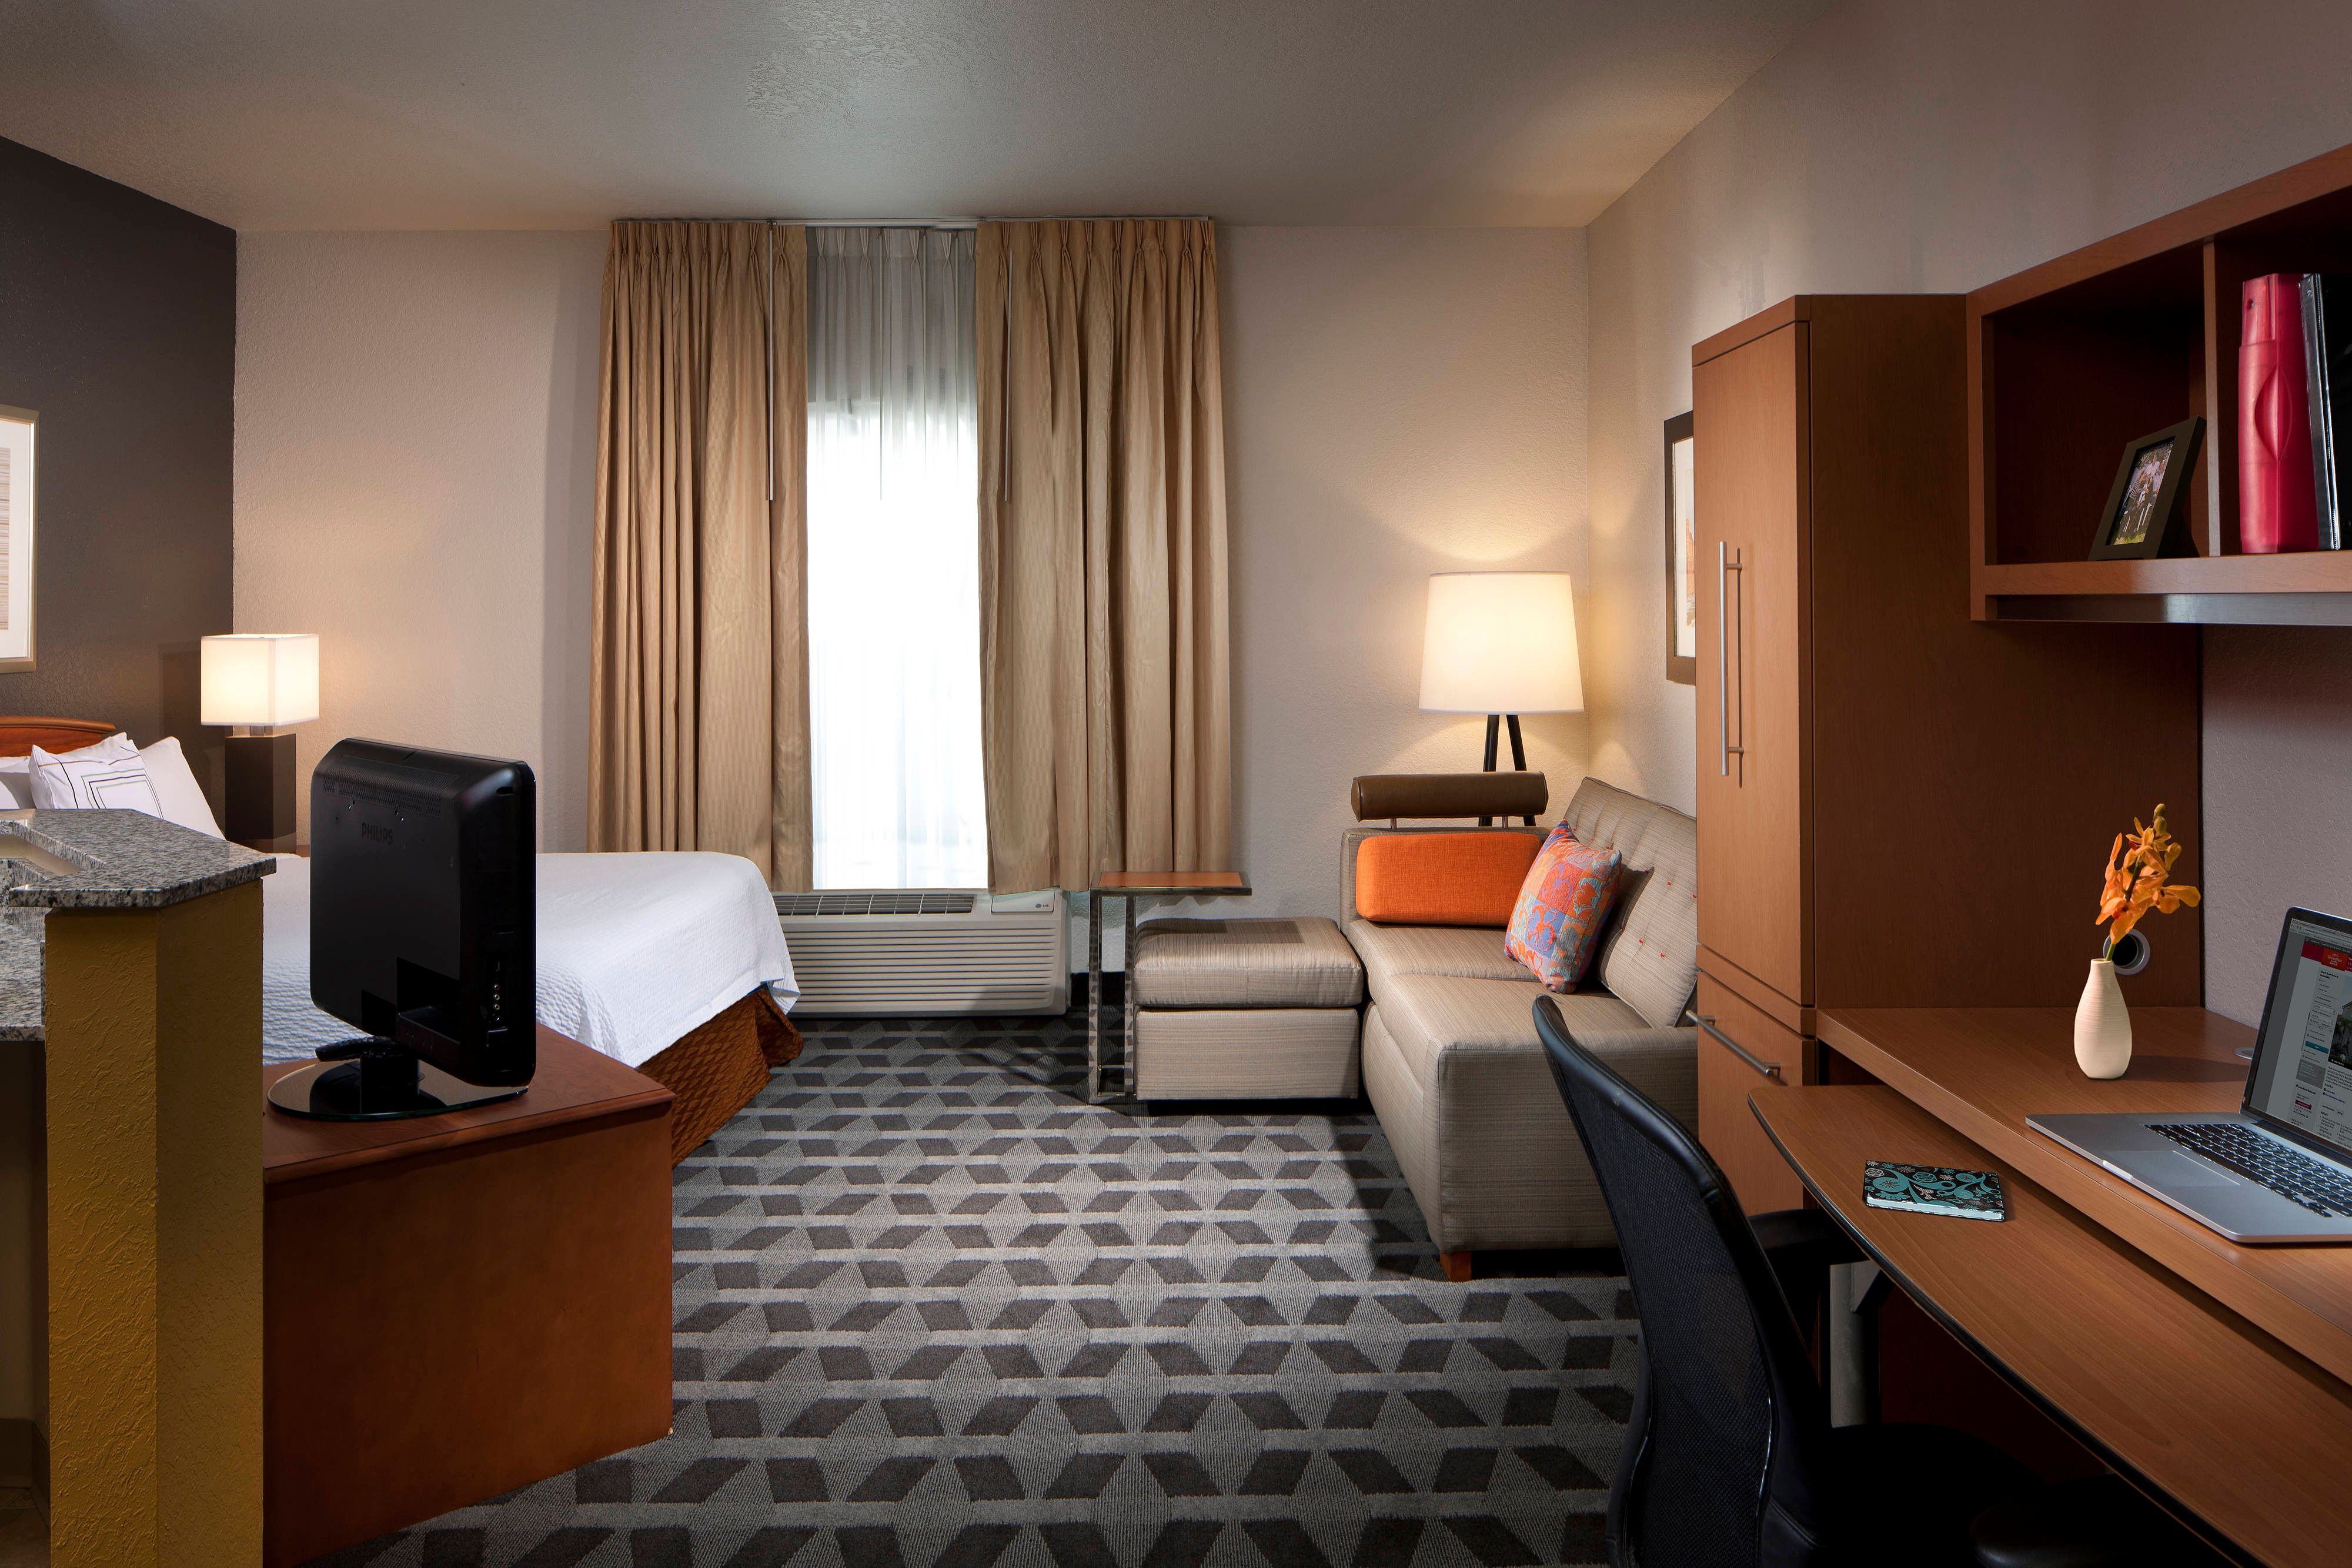 Fort Lauderdale Hotels Towneplace Suites Fort Lauderdale